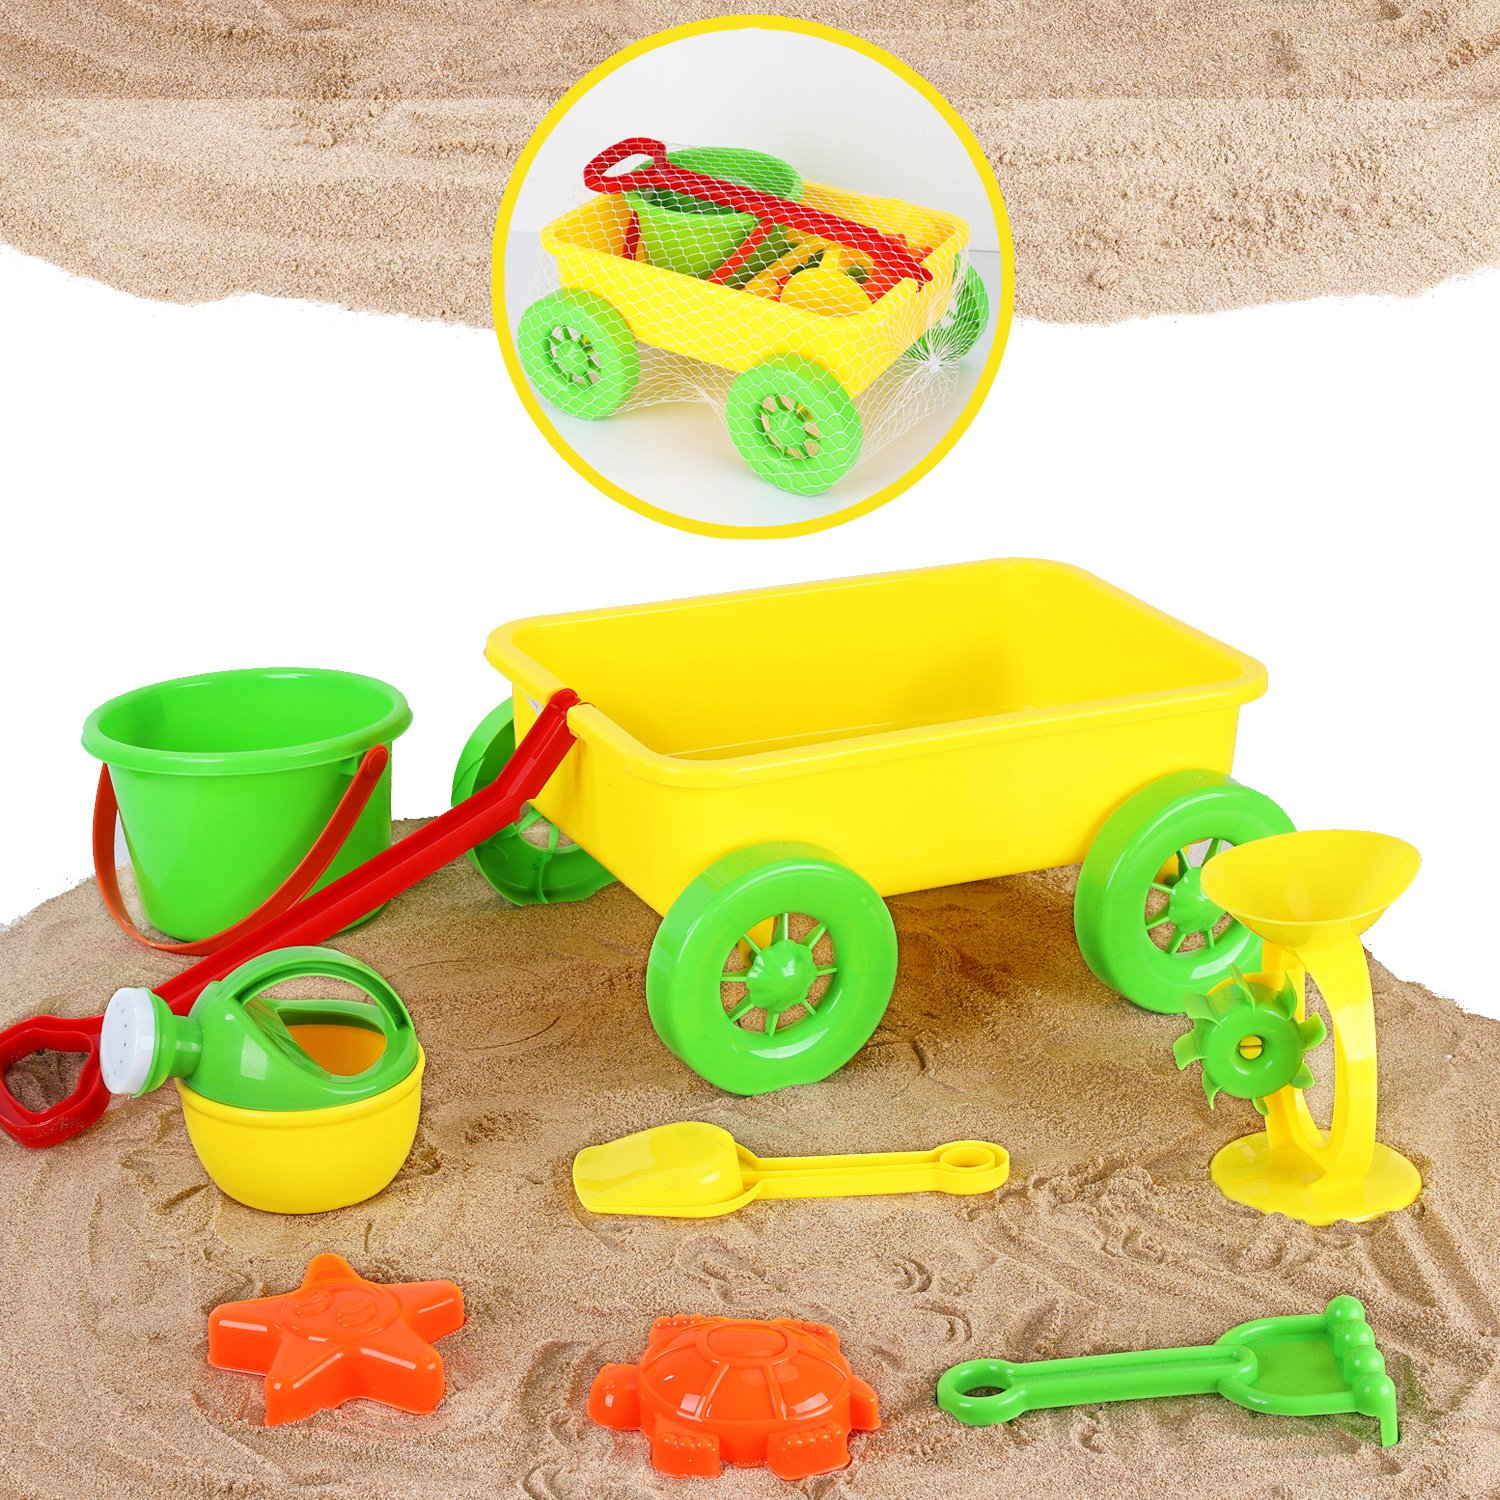 Liberty Imports Kids Beach Sand Toys   Colorful Pull Along Wagon   Outdoor Activities Educational Play Set With Sand Wheel, Watering Can, Shovel, Rake, Bucket, and 2 Sea Creature Molds (8 Pieces)